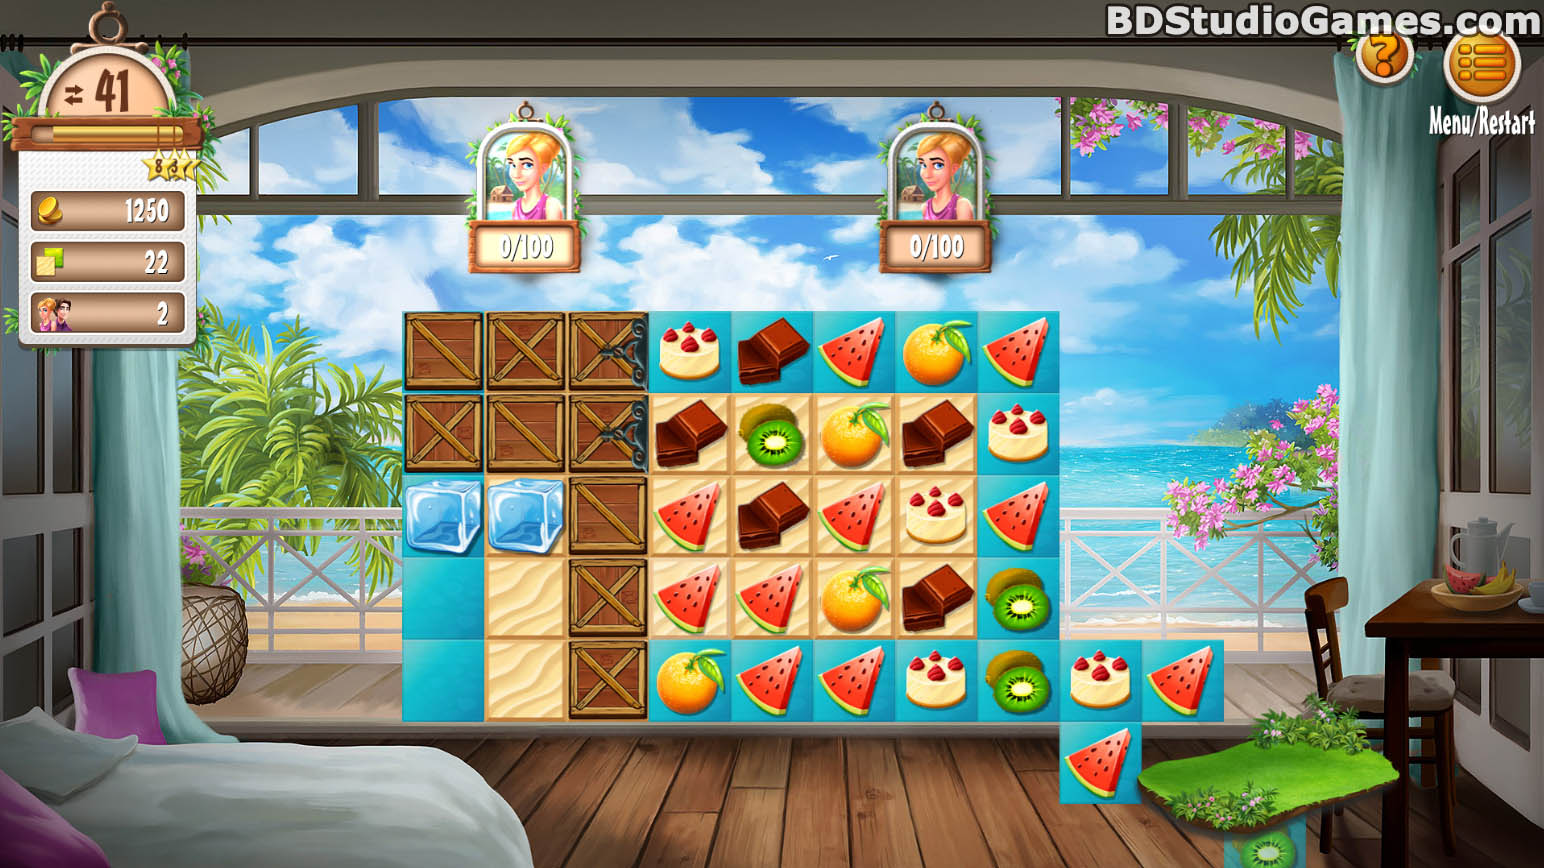 5 Star Miami Resort Trial Version Free Download Full Version Buy Now Screenshots 11